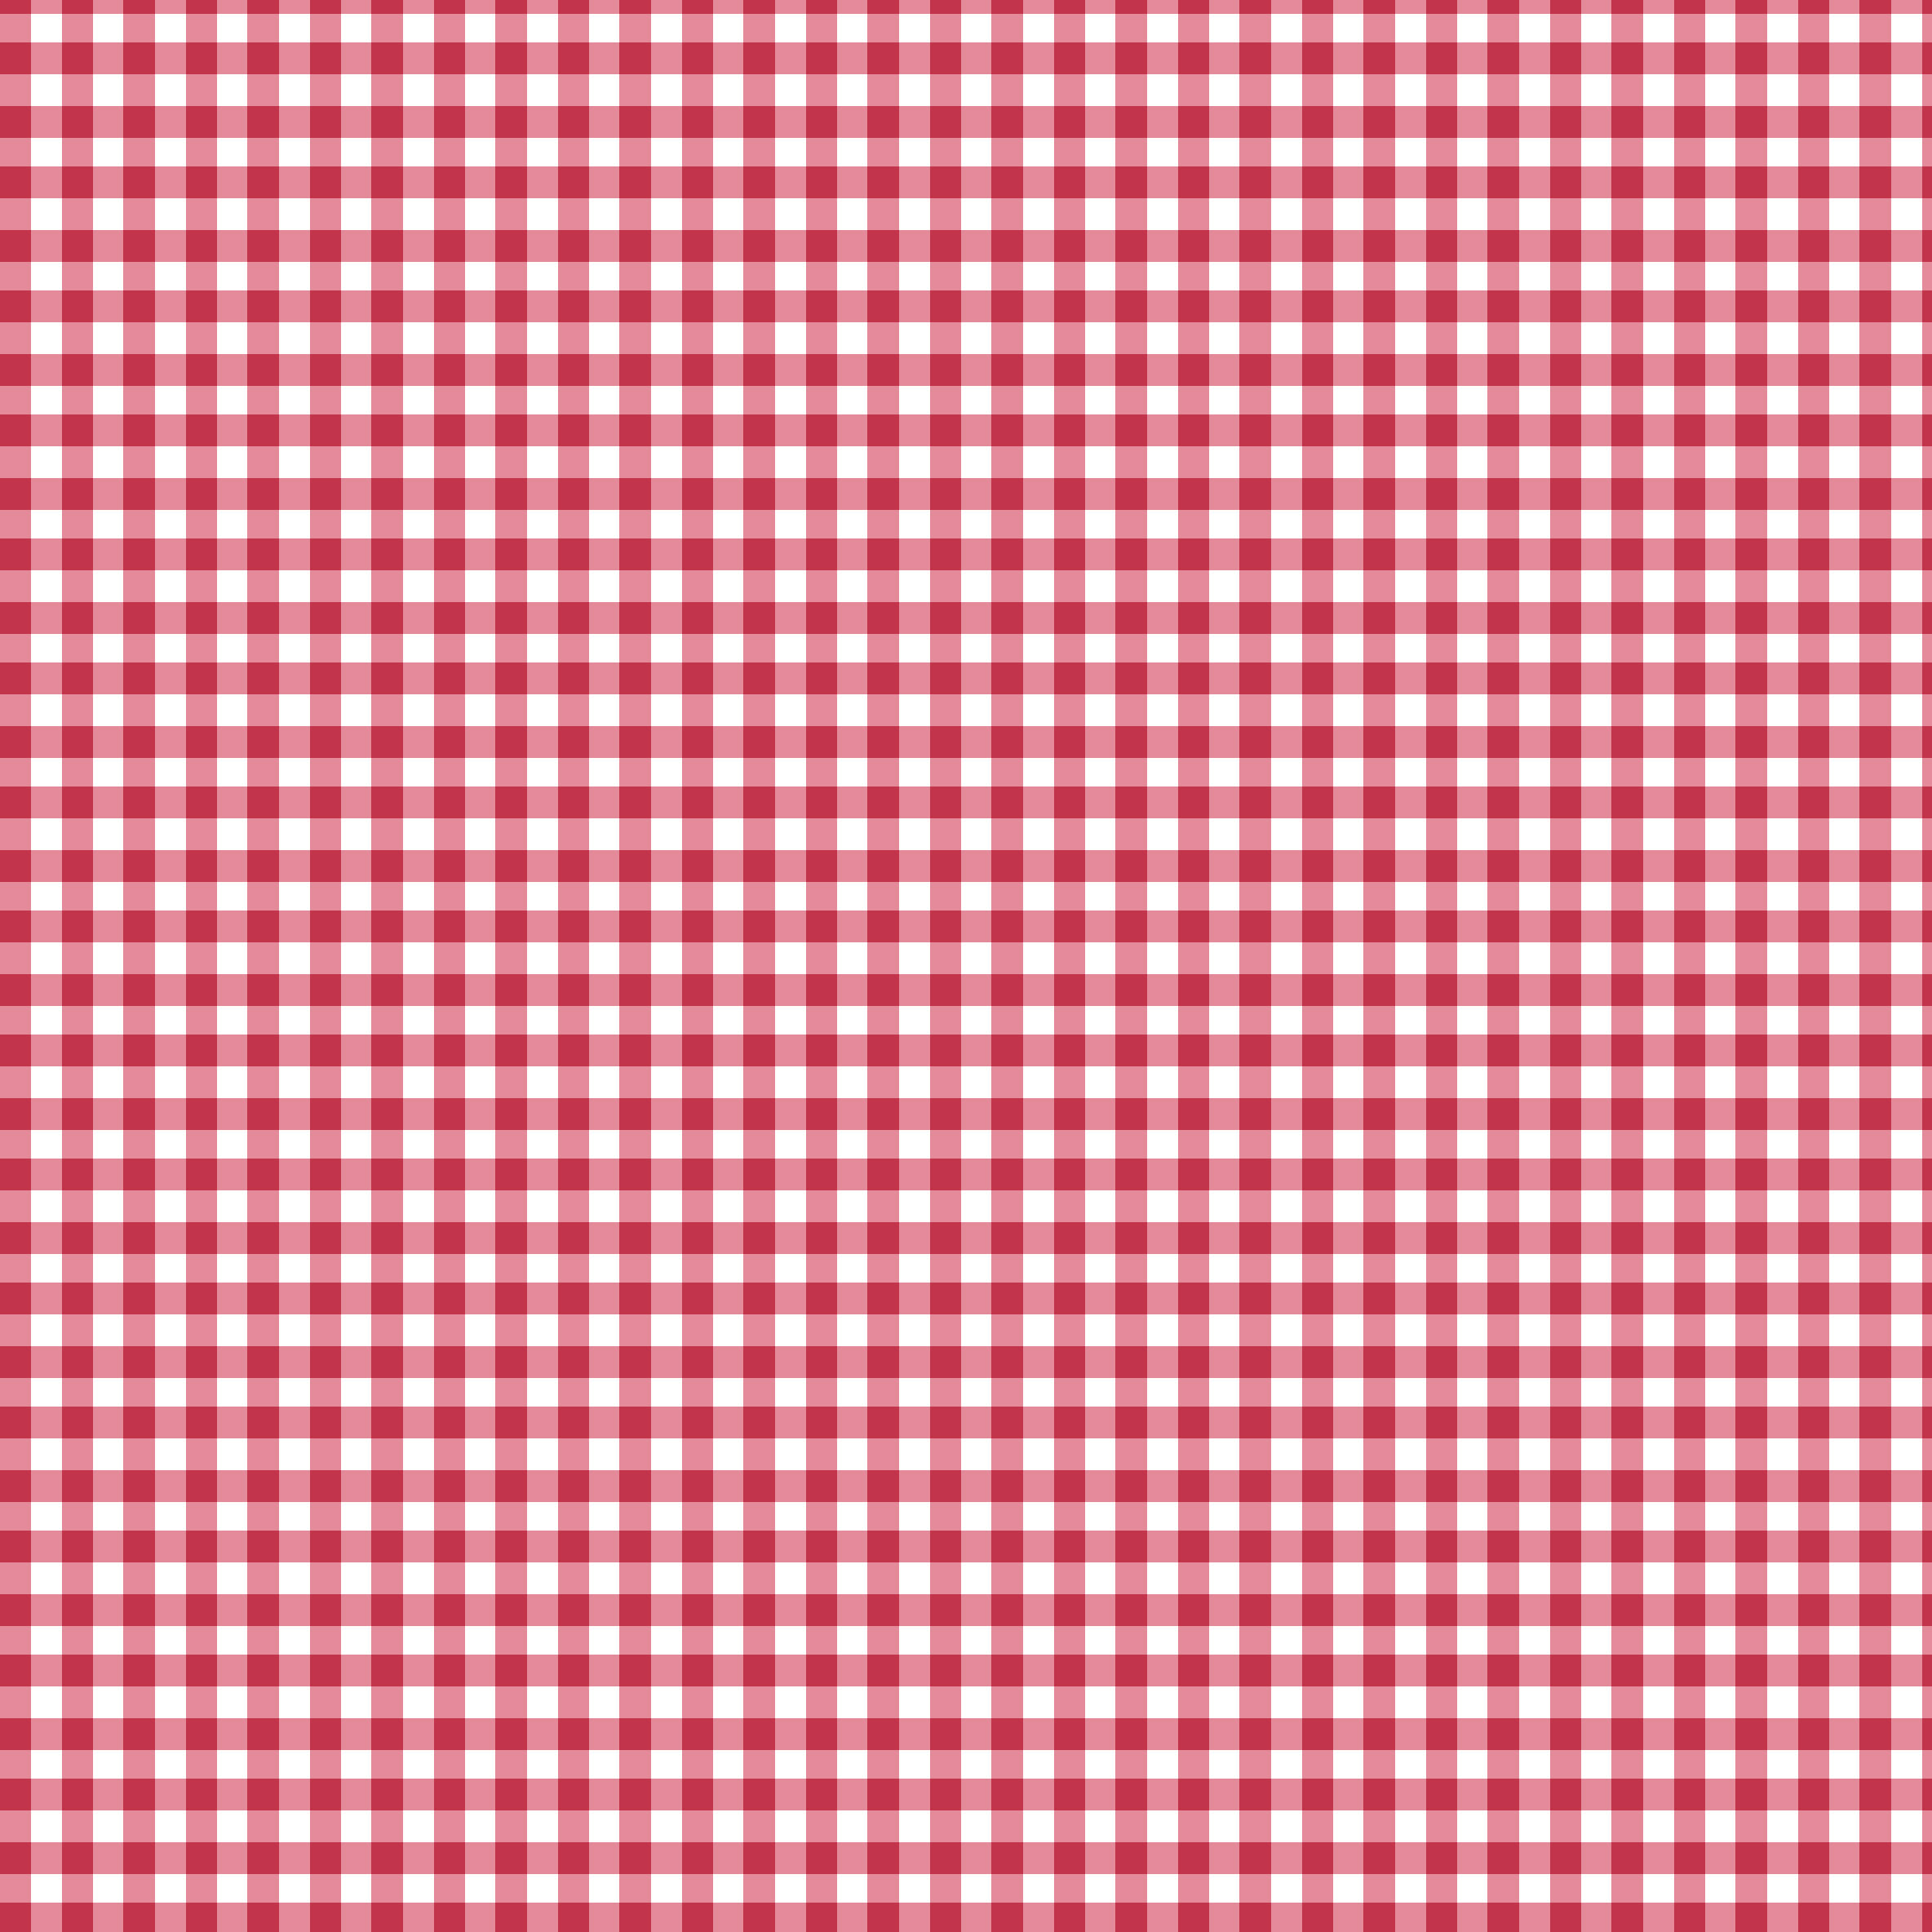 """SHASON TEXTILE (3 Yards cut) 100% COTTON PRINT QUILTING FABRIC, RED / WHITE 1/8"""" GINGHAM"""